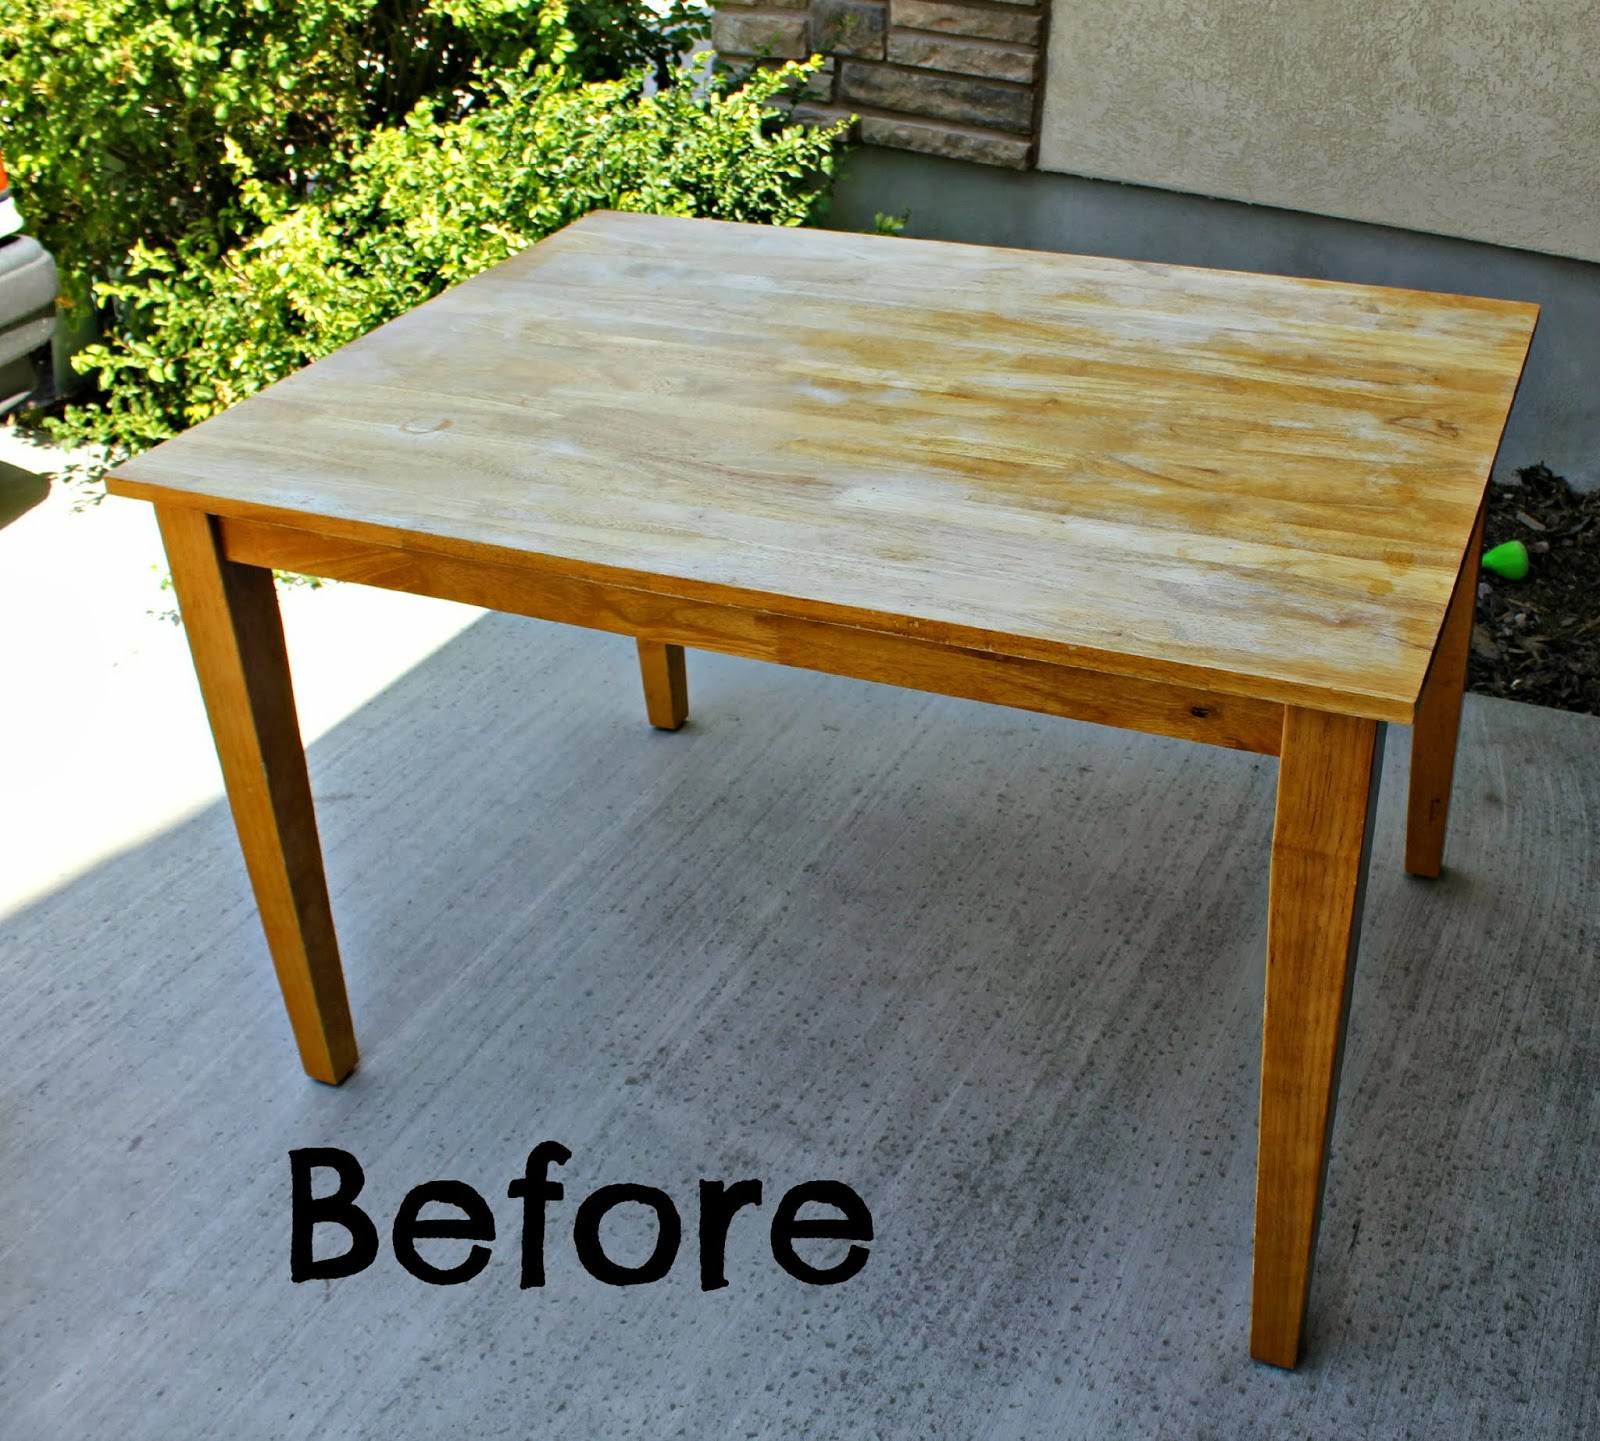 Refinish a wooden bench refinish a wooden chair refinish a wooden desk refinish a wooden - Refinished kitchen tables ...